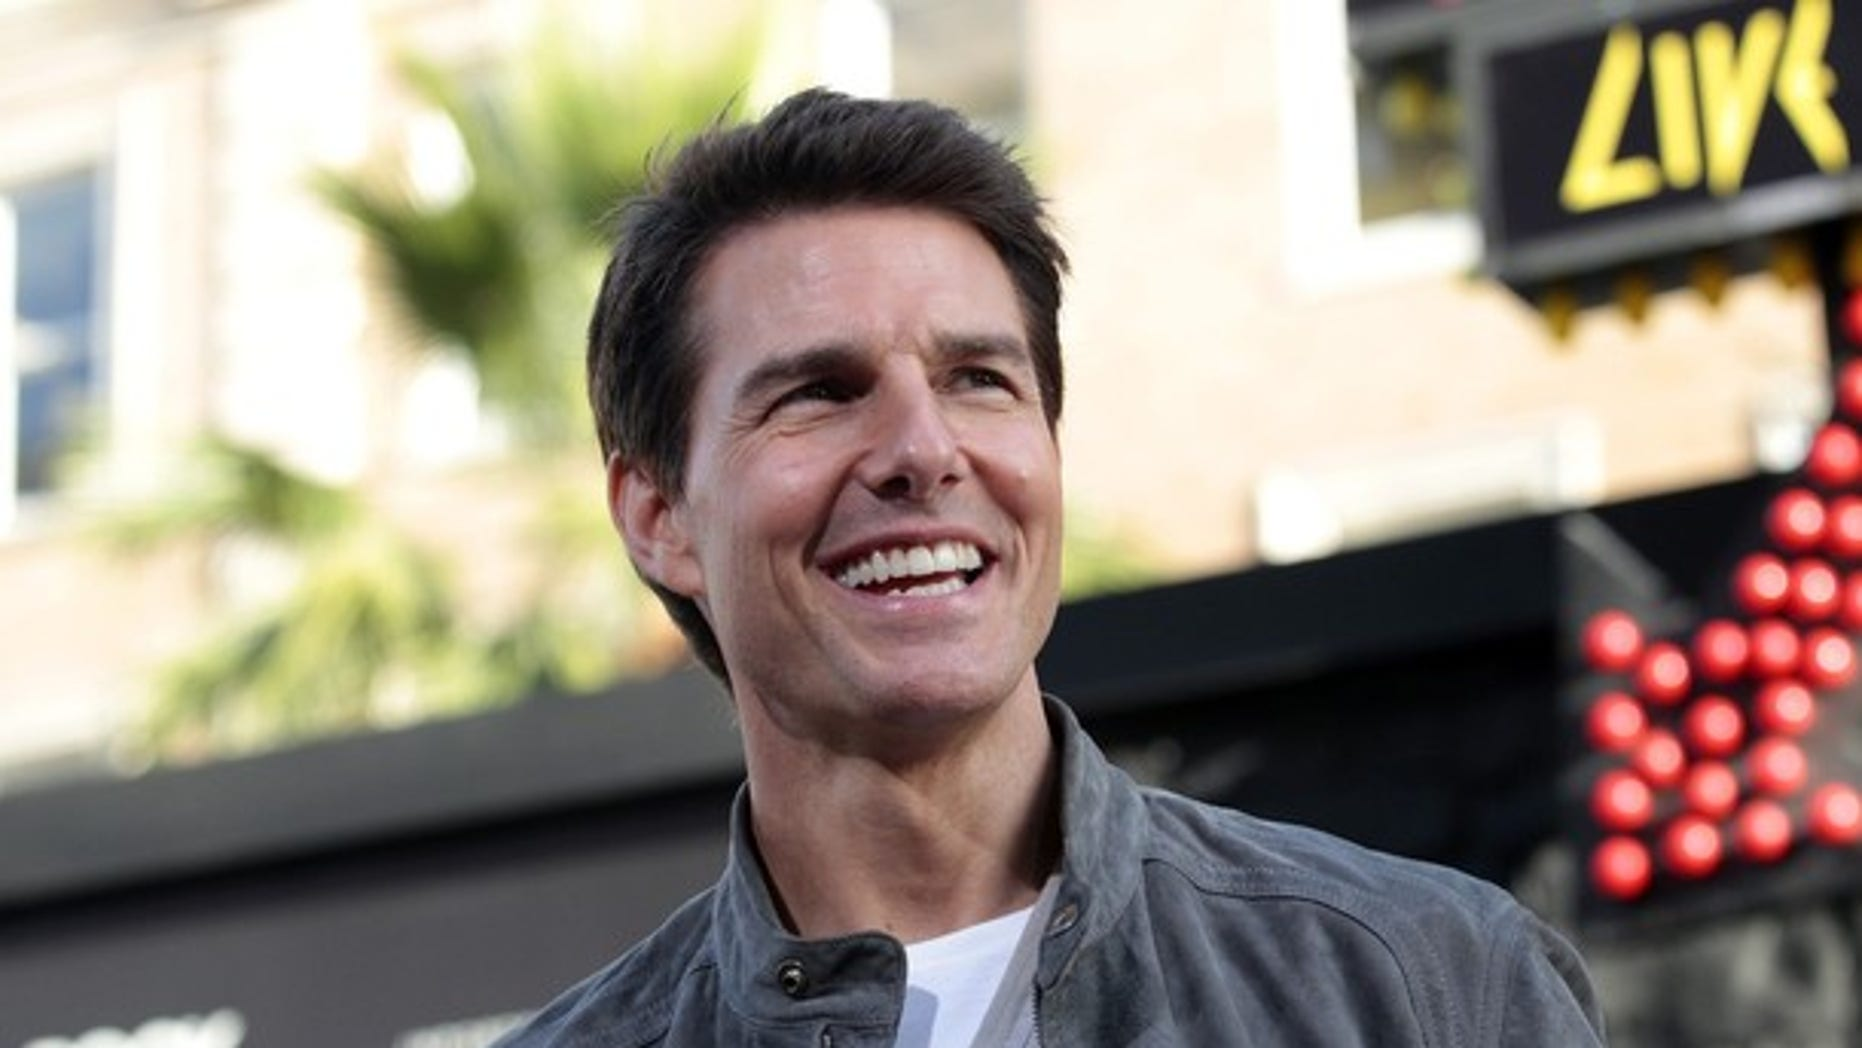 """Cast member Tom Cruise poses at the premiere of """"Rock of Ages"""" at the Grauman's Chinese theatre in Hollywood, California June 8, 2012. The movie opens in the U.S. on June 15.   REUTERS/Mario Anzuoni  (UNITED STATES - Tags: ENTERTAINMENT)"""